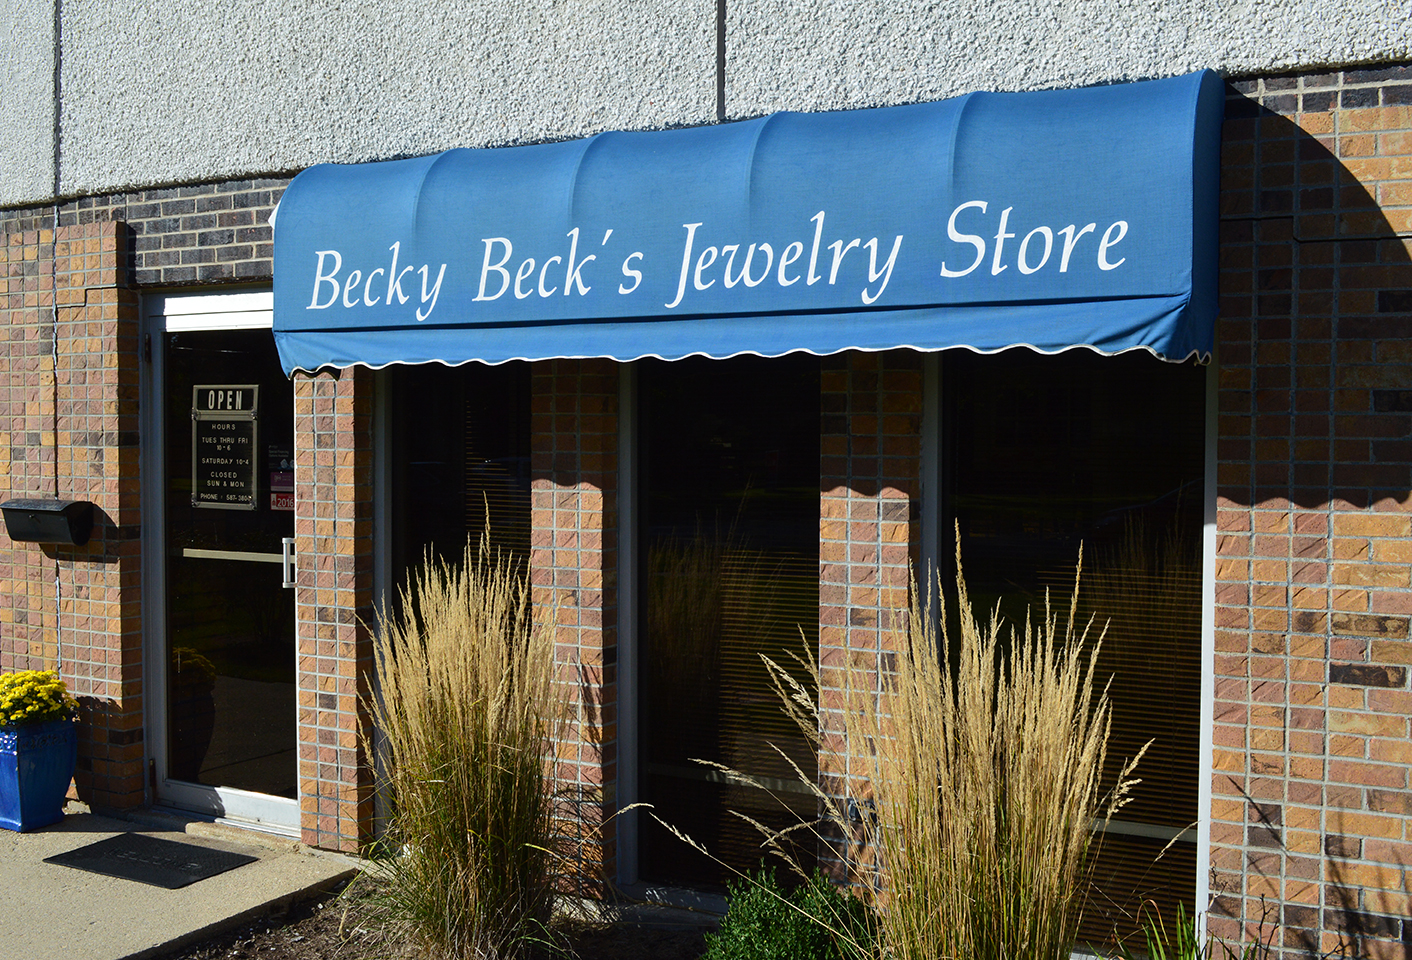 Becky Beck's Jewelry Store in DeKalb, IL